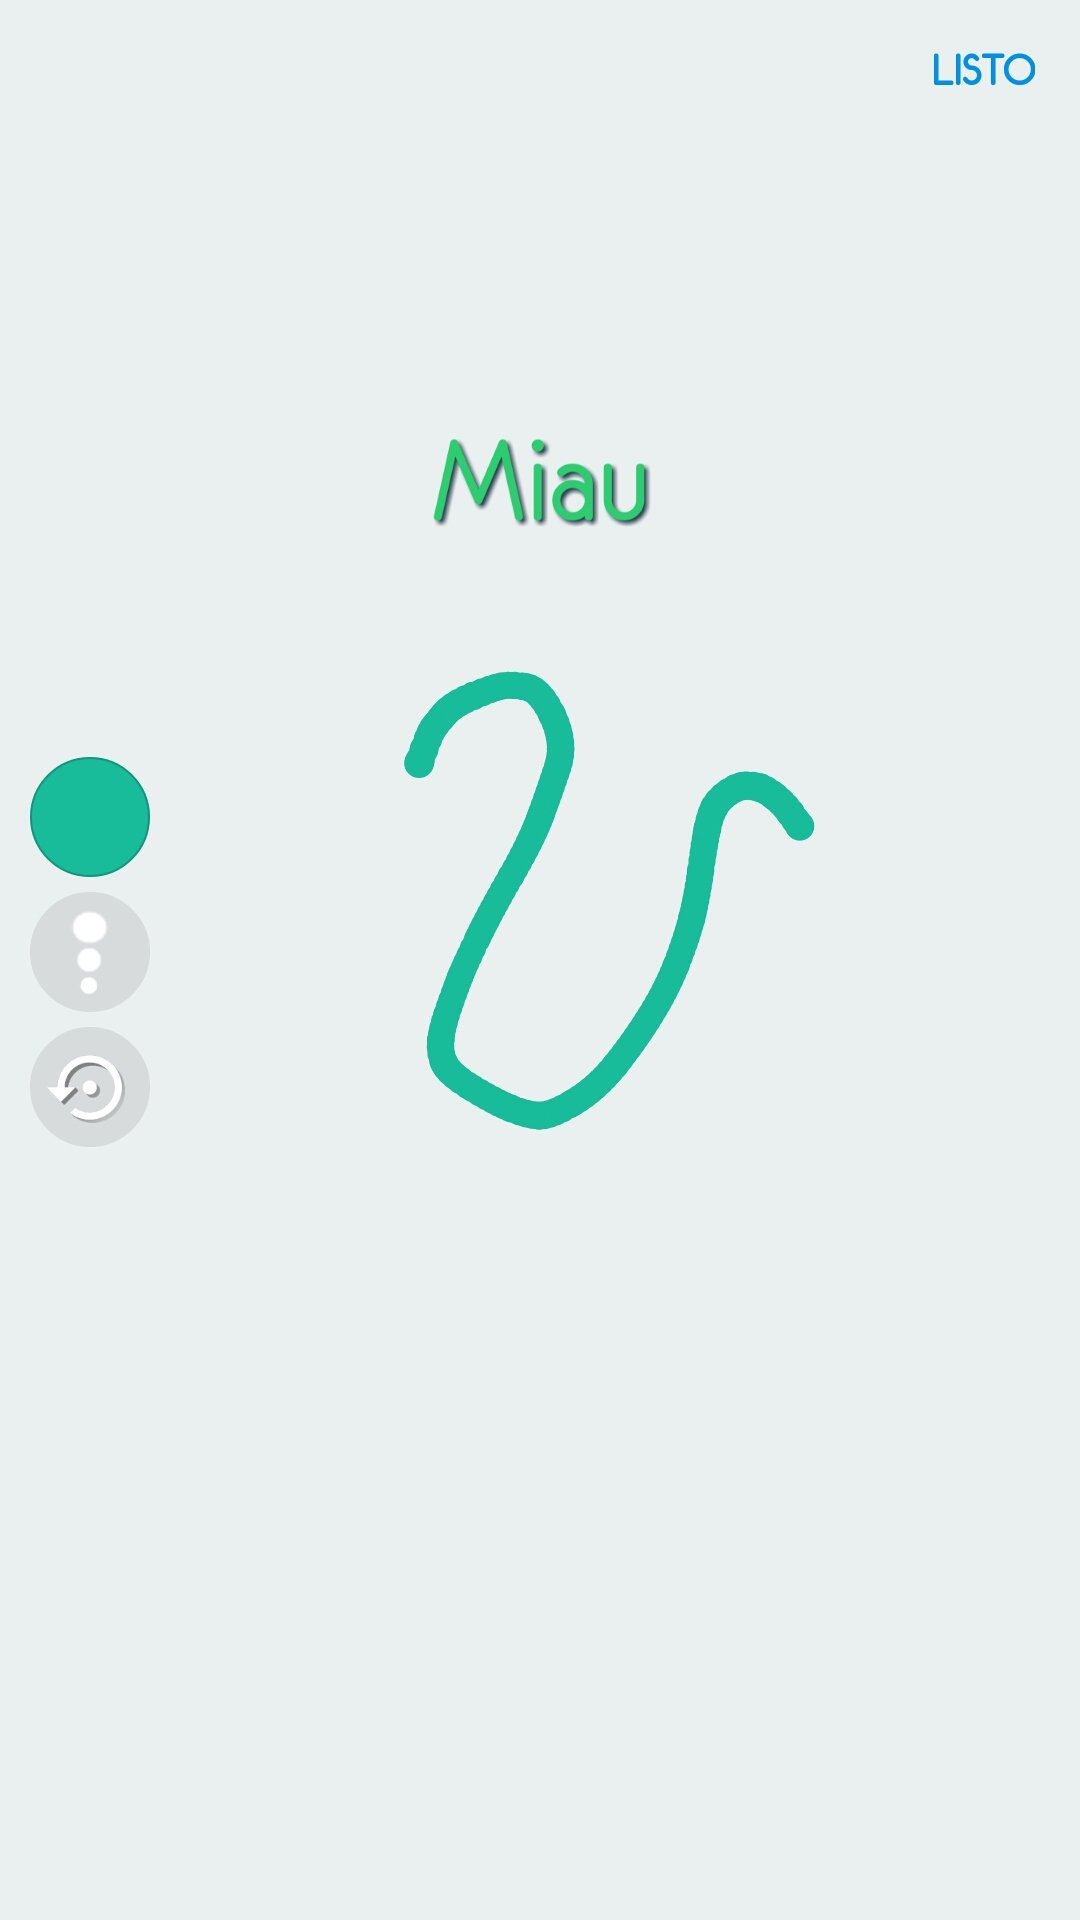 imo apk free download for android 4.0